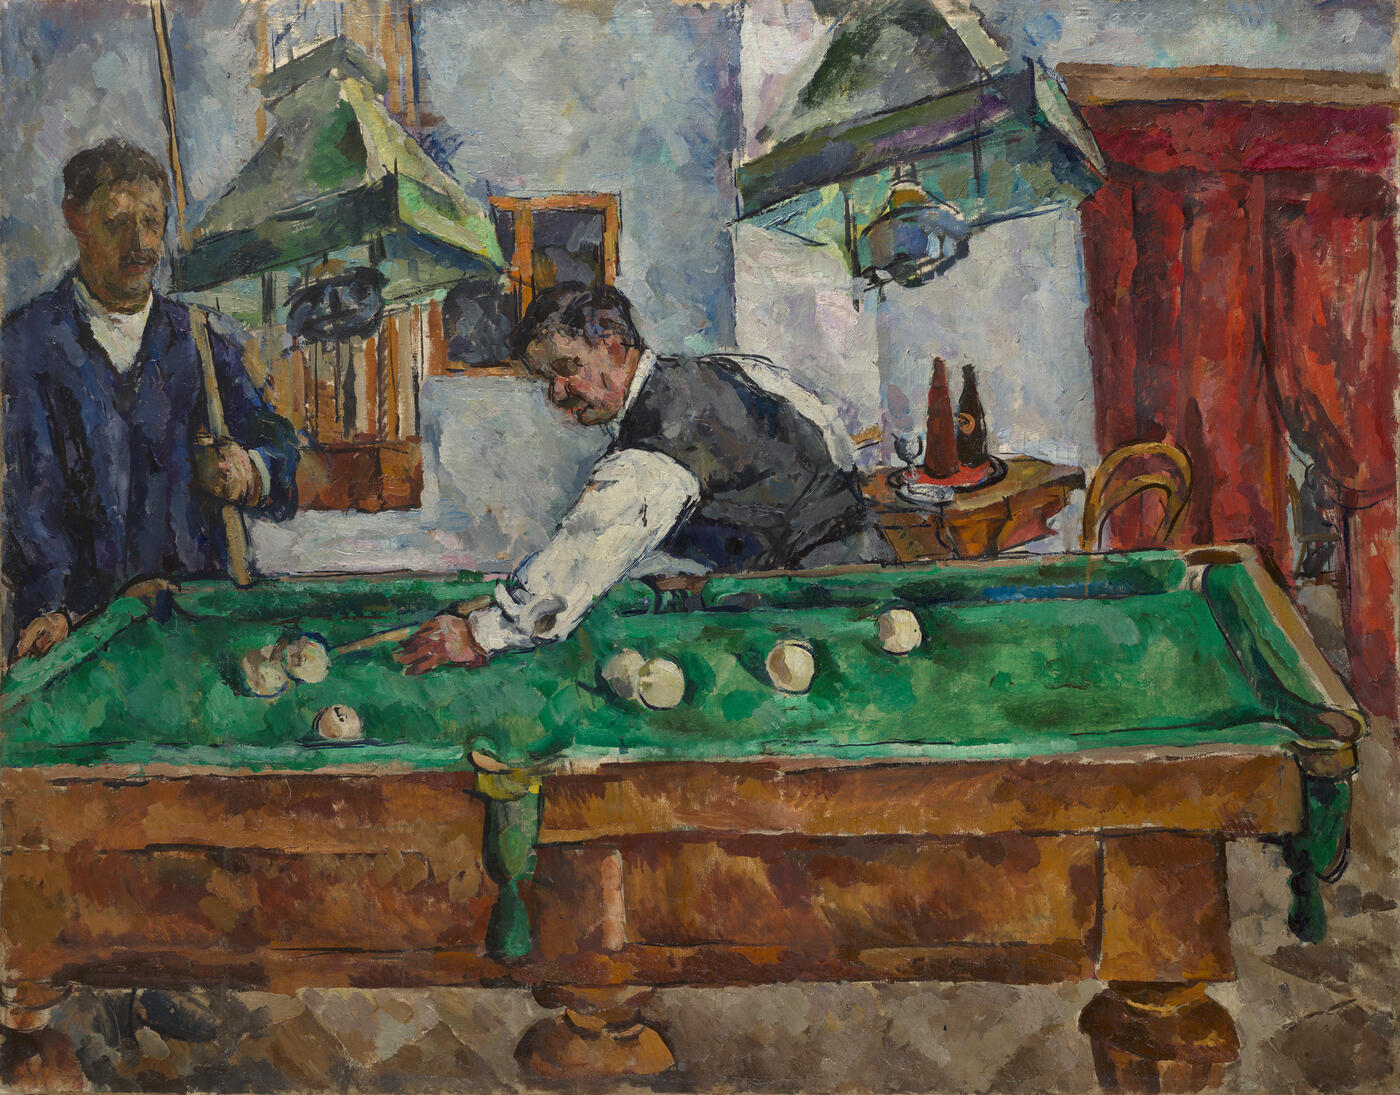 The Game of Billiards. Aristarkh Lentulov and Petr Konchalovsky